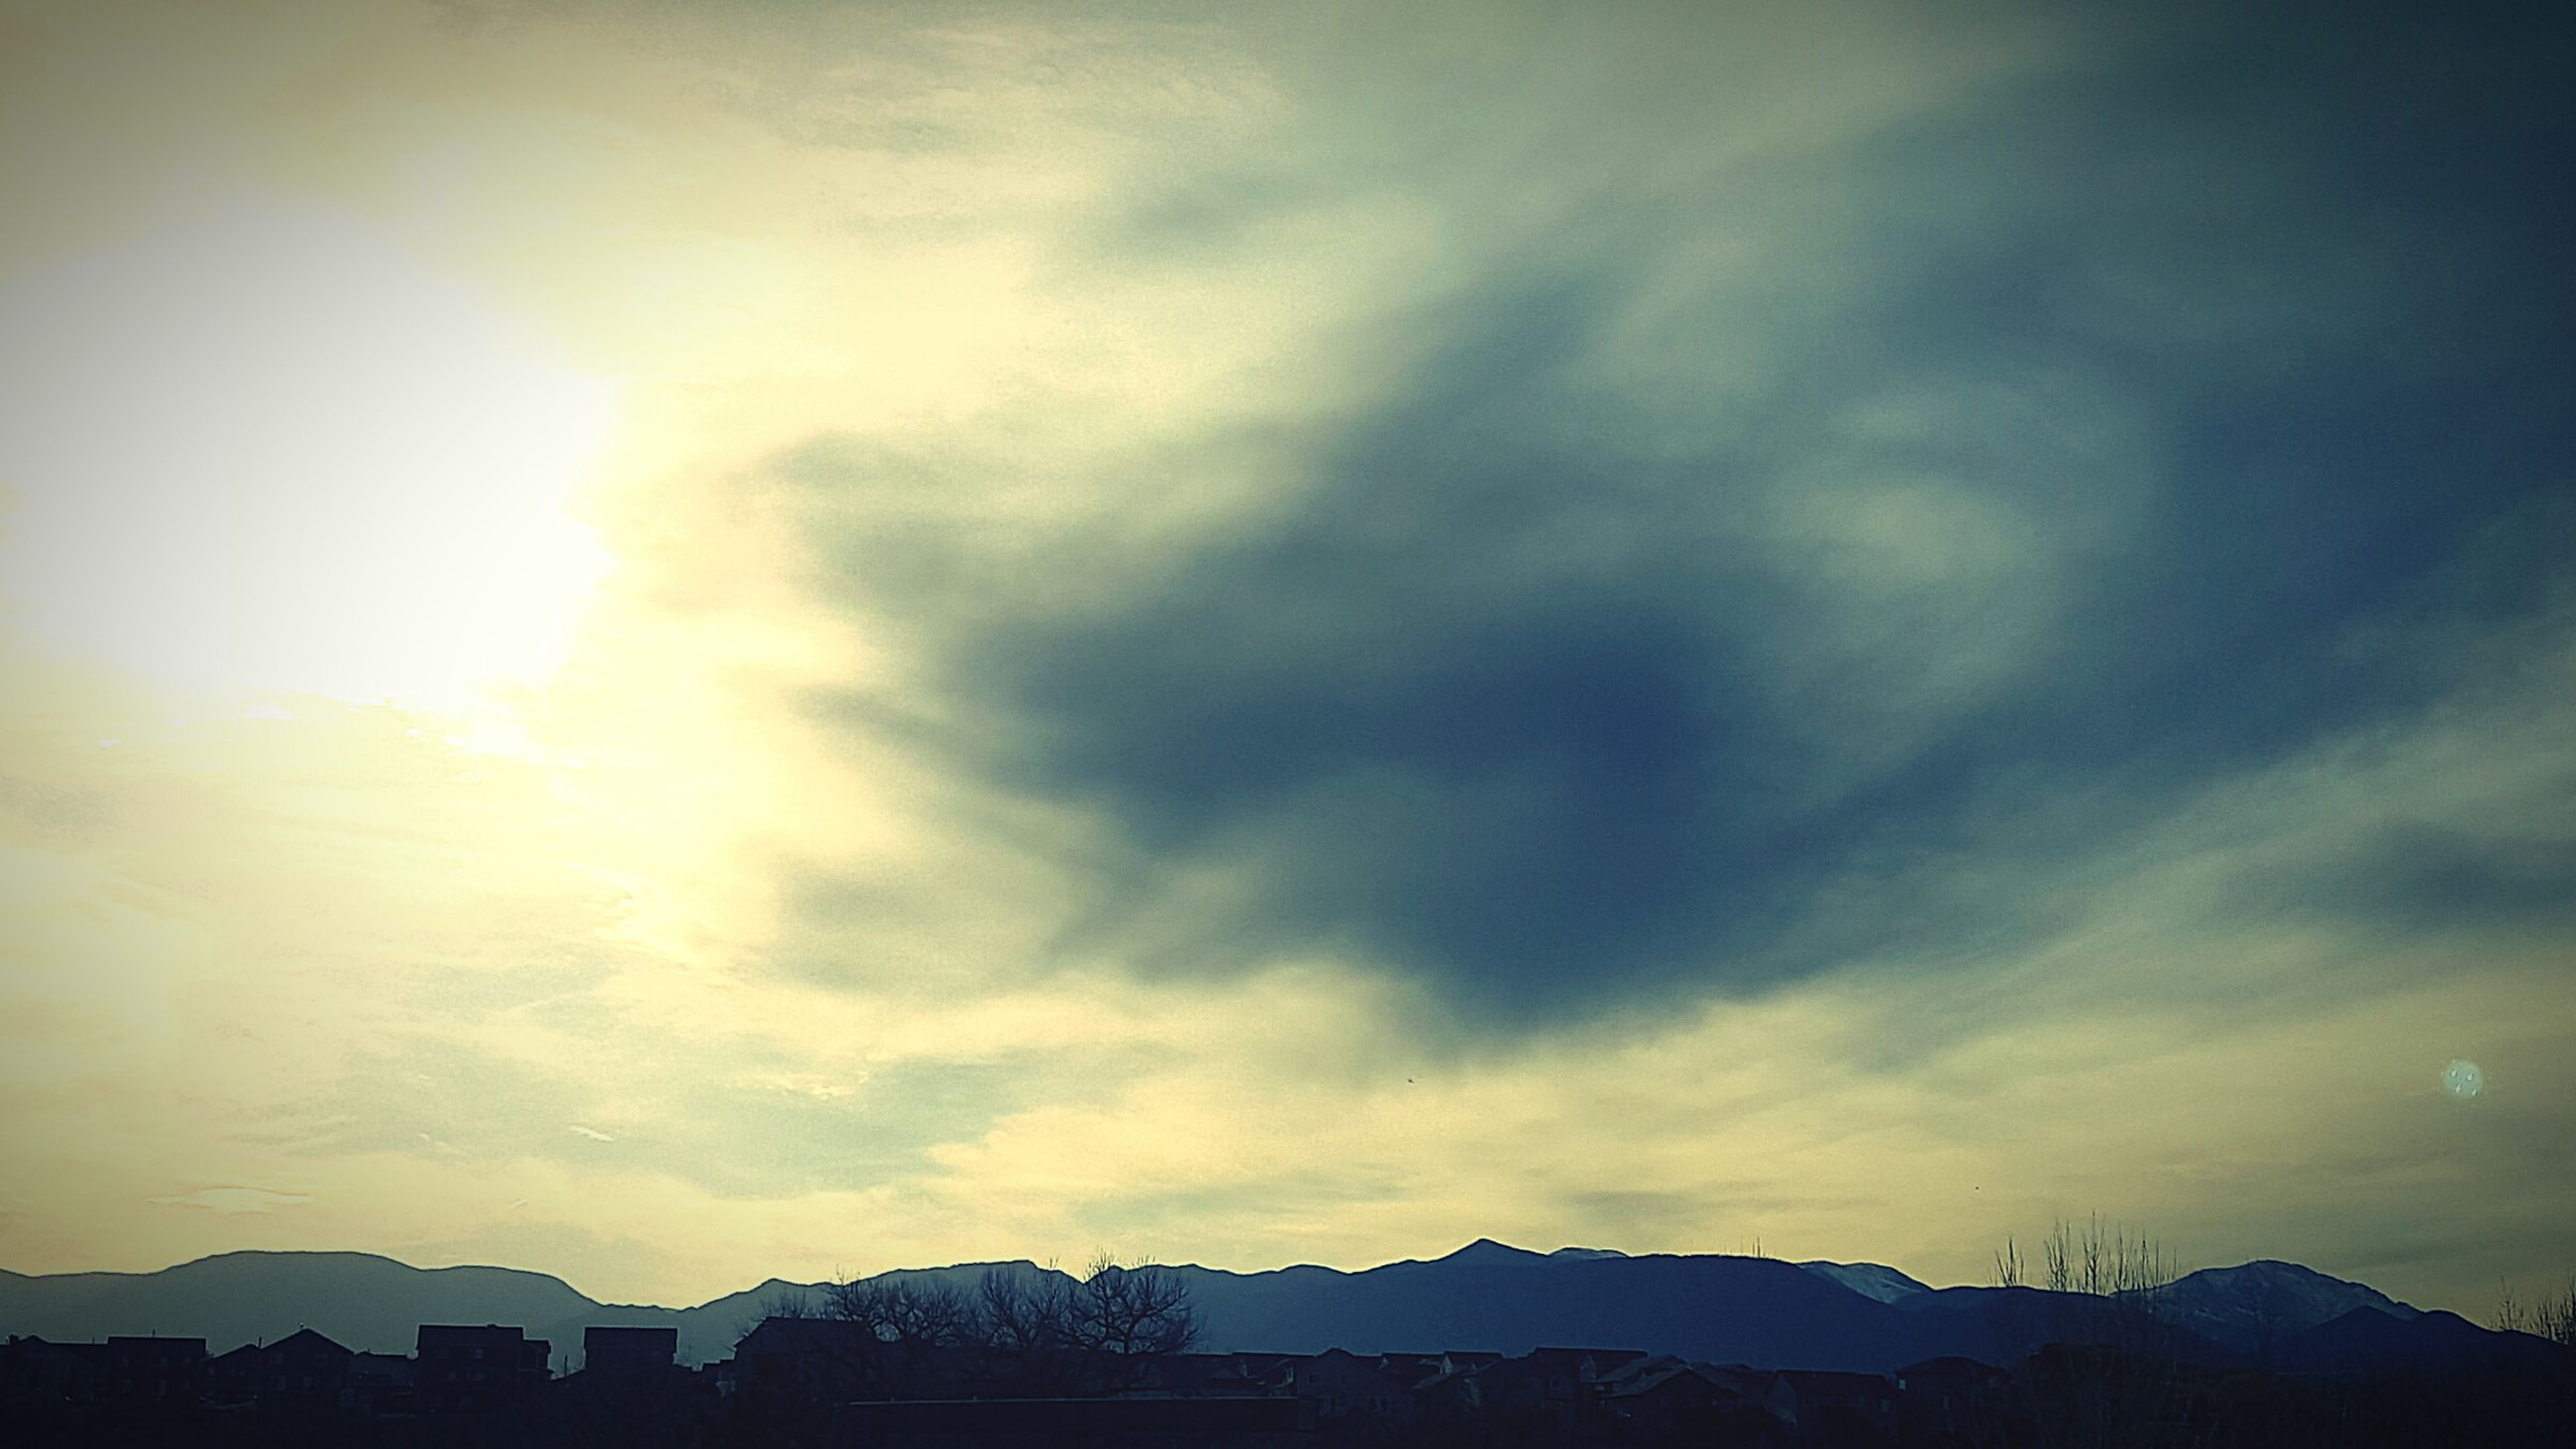 mountain, sky, scenics, cloud - sky, beauty in nature, tranquil scene, mountain range, tranquility, weather, nature, silhouette, cloudy, sunset, cloud, idyllic, landscape, outdoors, low angle view, snow, dusk